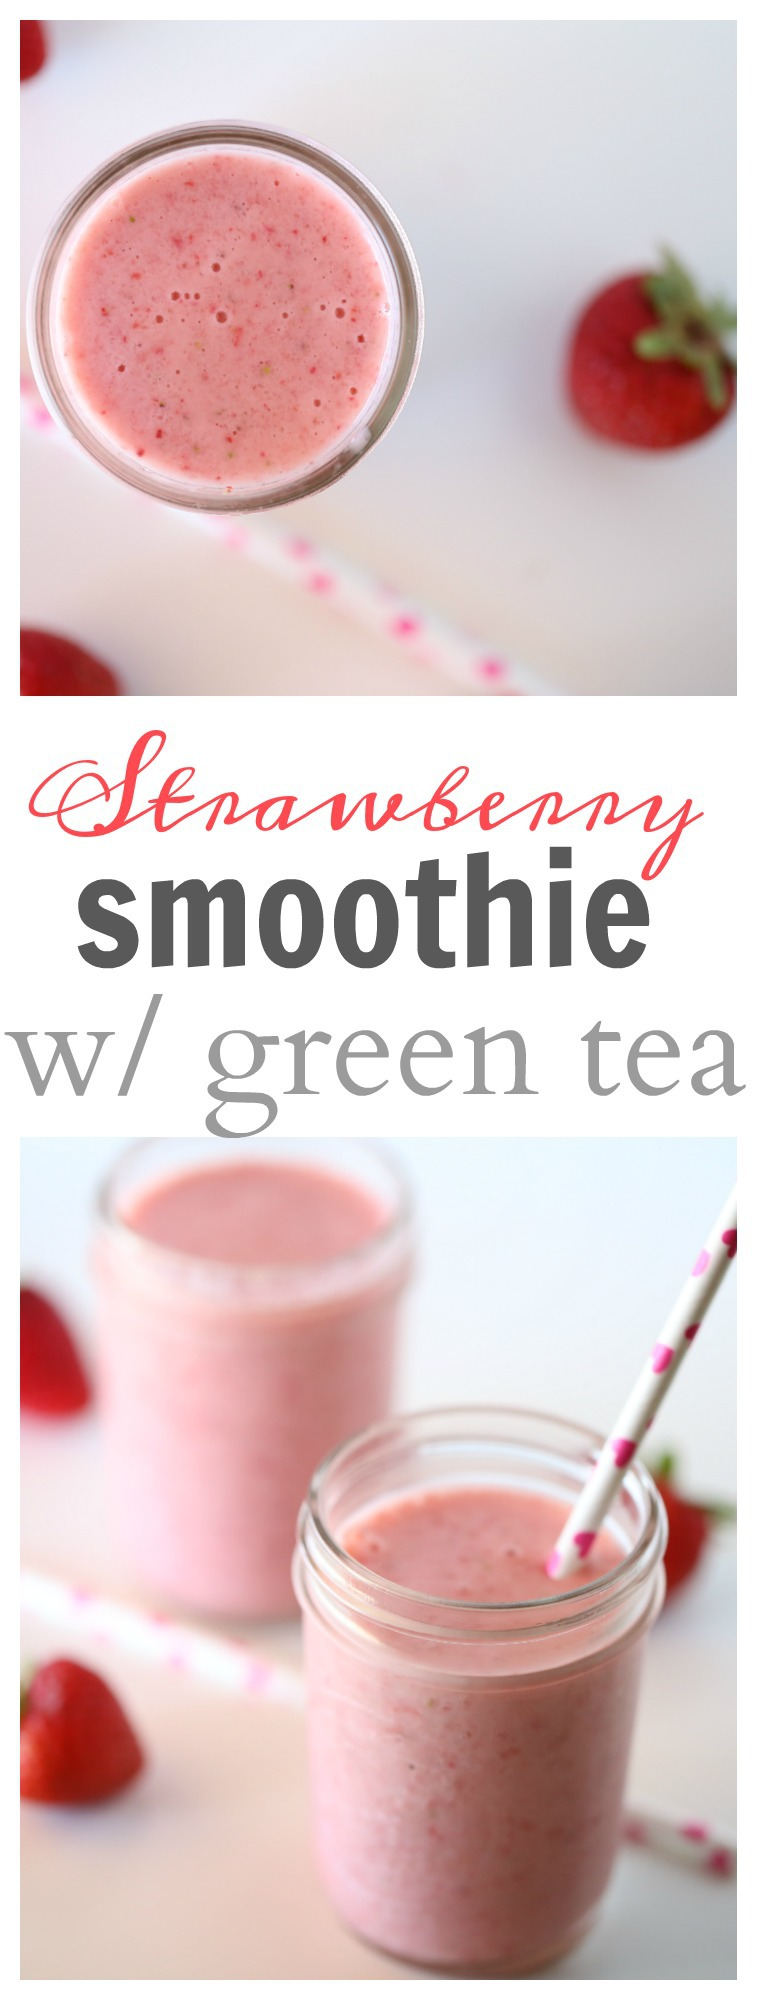 Strawberry Smoothie with Green Tea